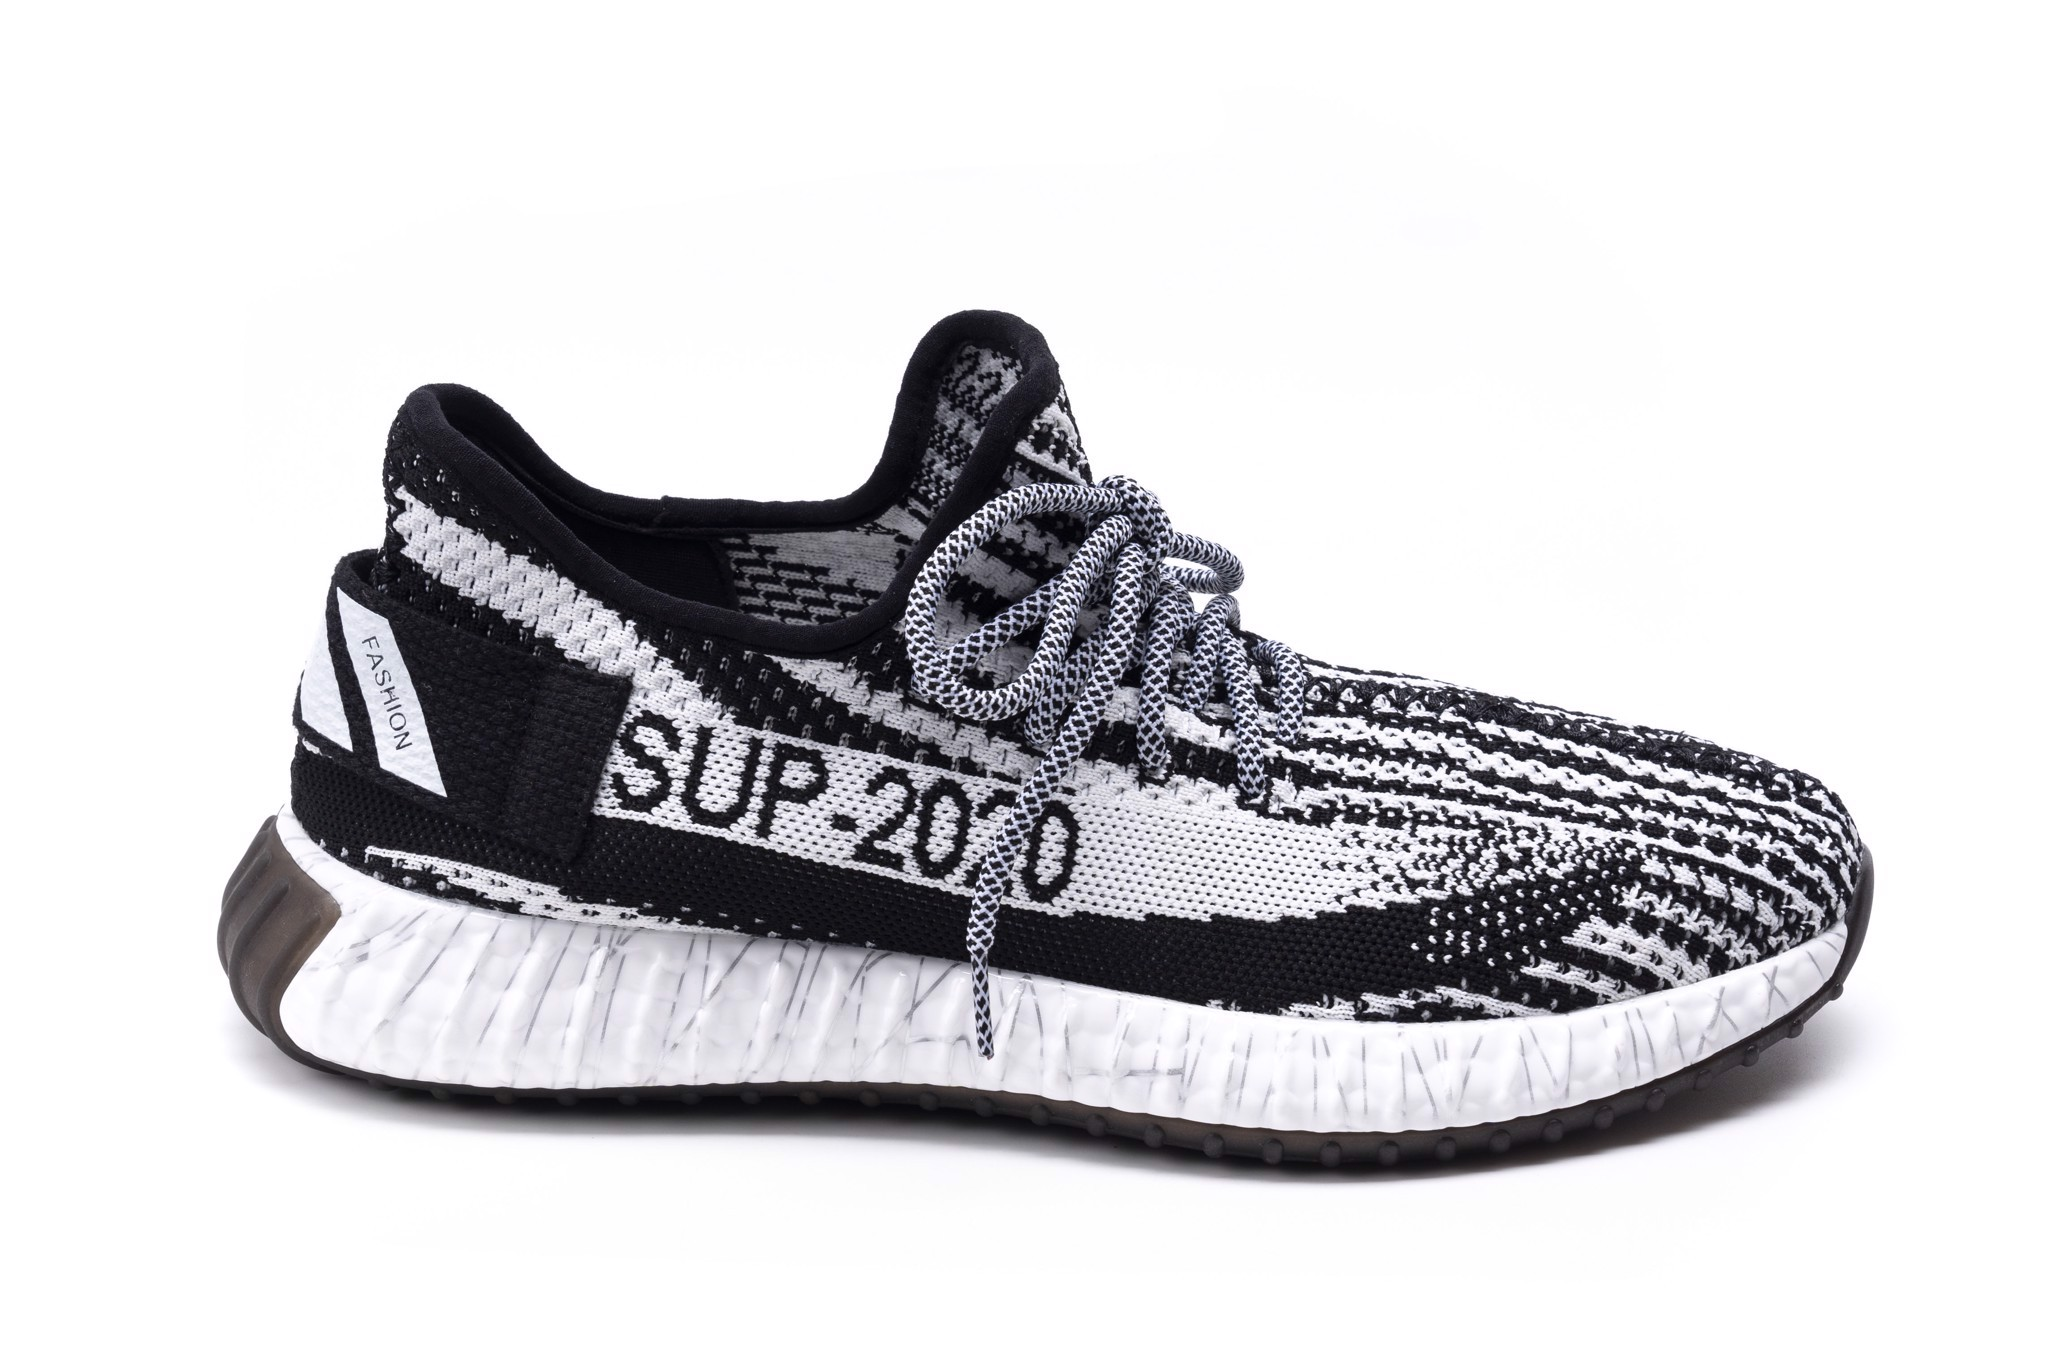 Giày thể thao Sneaker Sup 2020